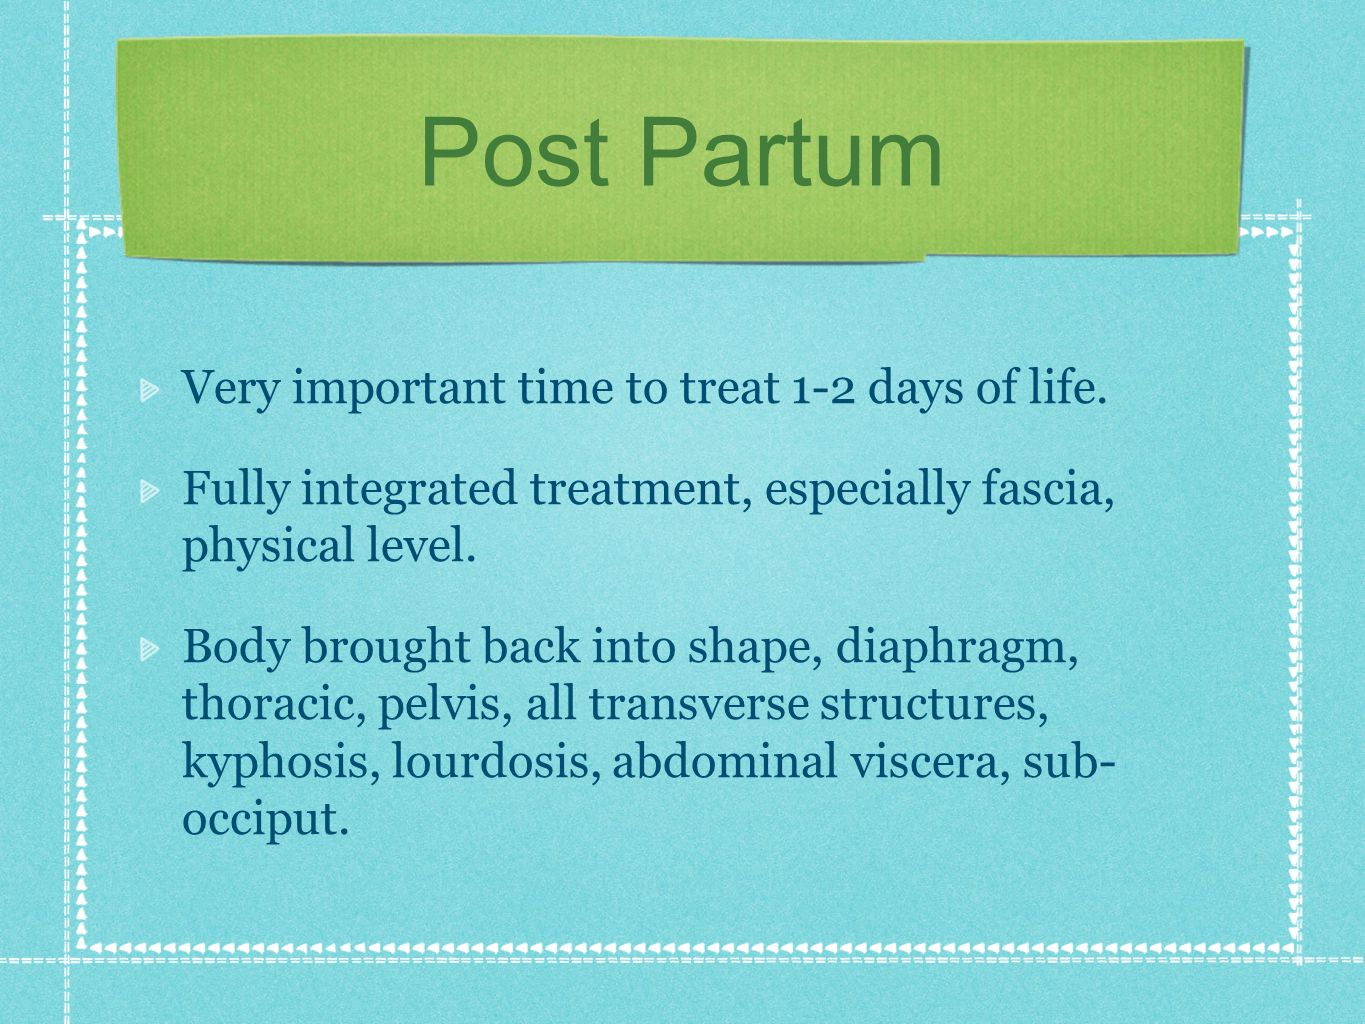 Post Partum Very important time to treat 1-2 days of life. Fully integrated treatment, especially fascia, physical level. Body brought back into shape